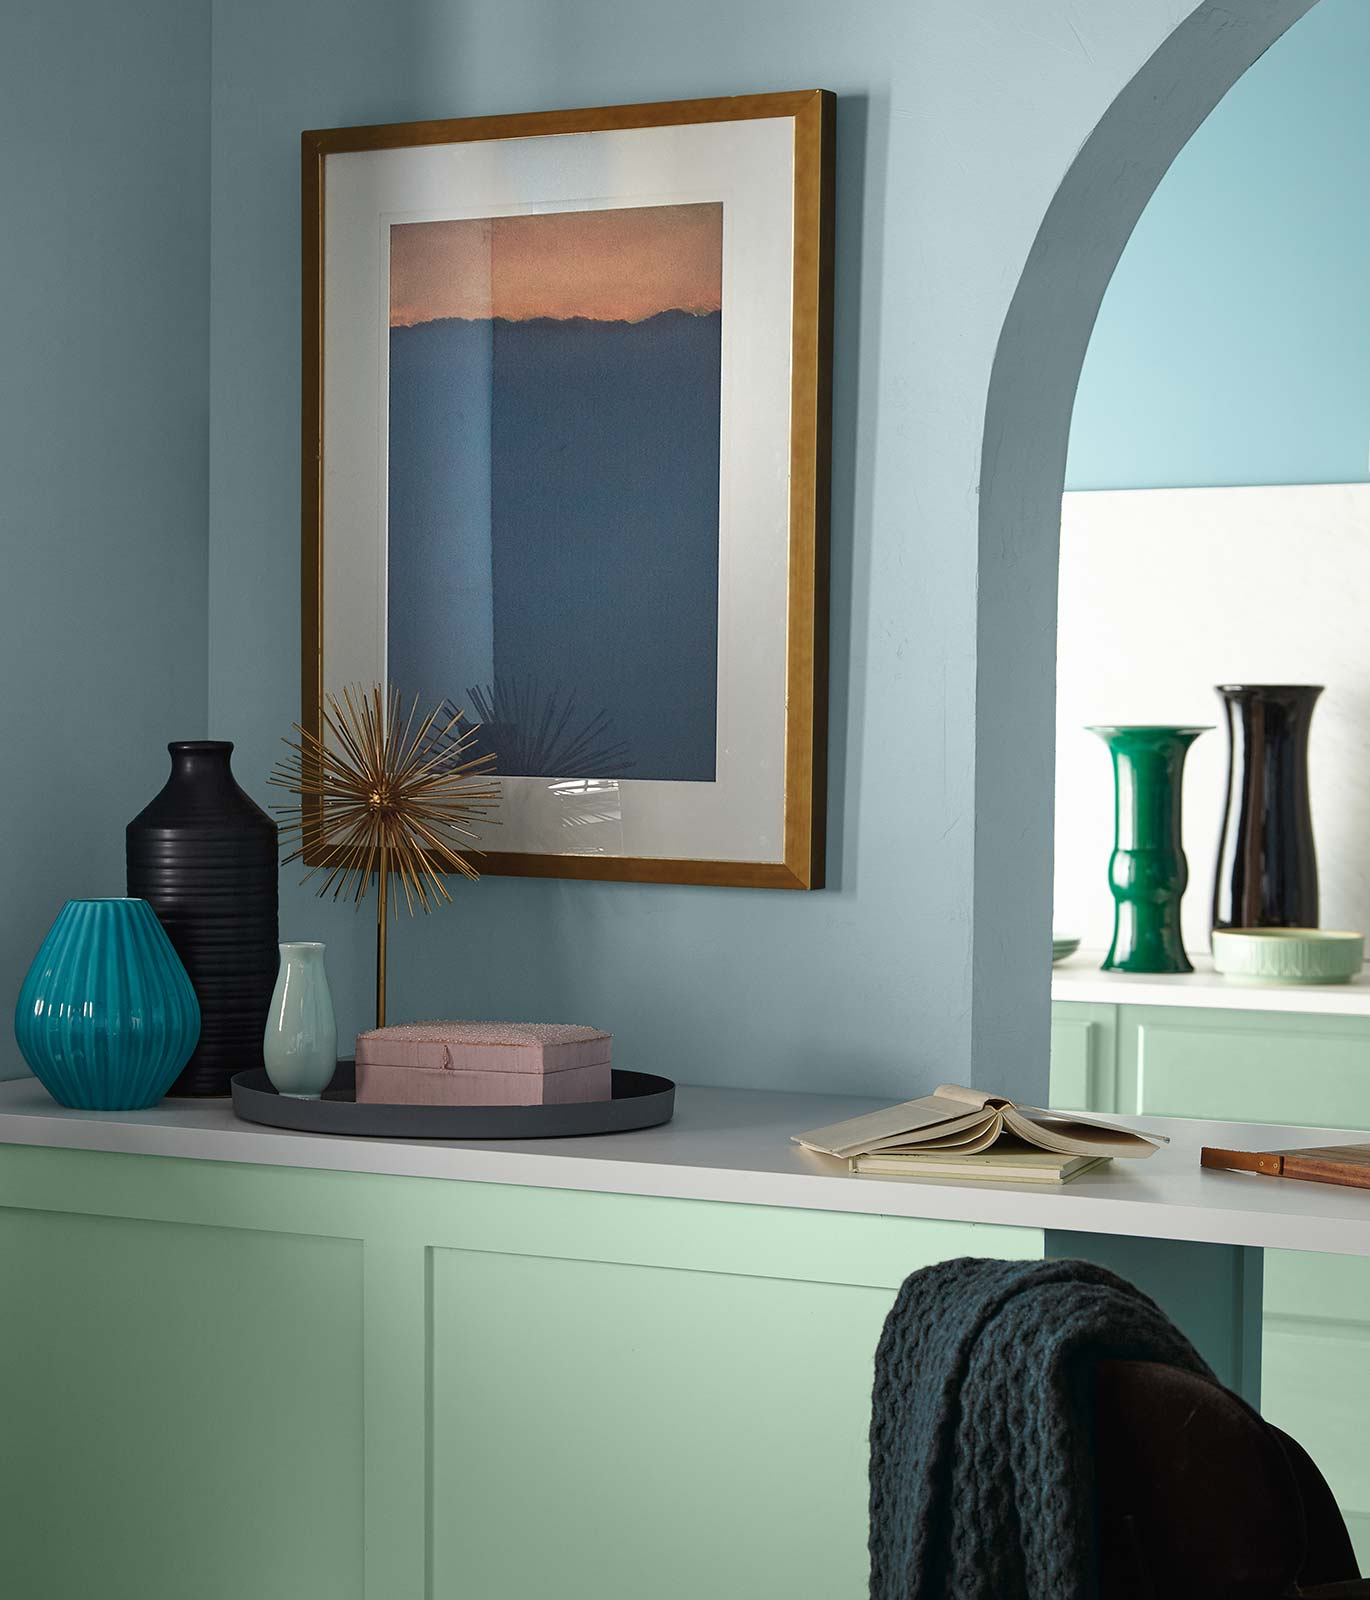 BEHR Color Trends 2021 Subtle Focus Interior Color Inspiration